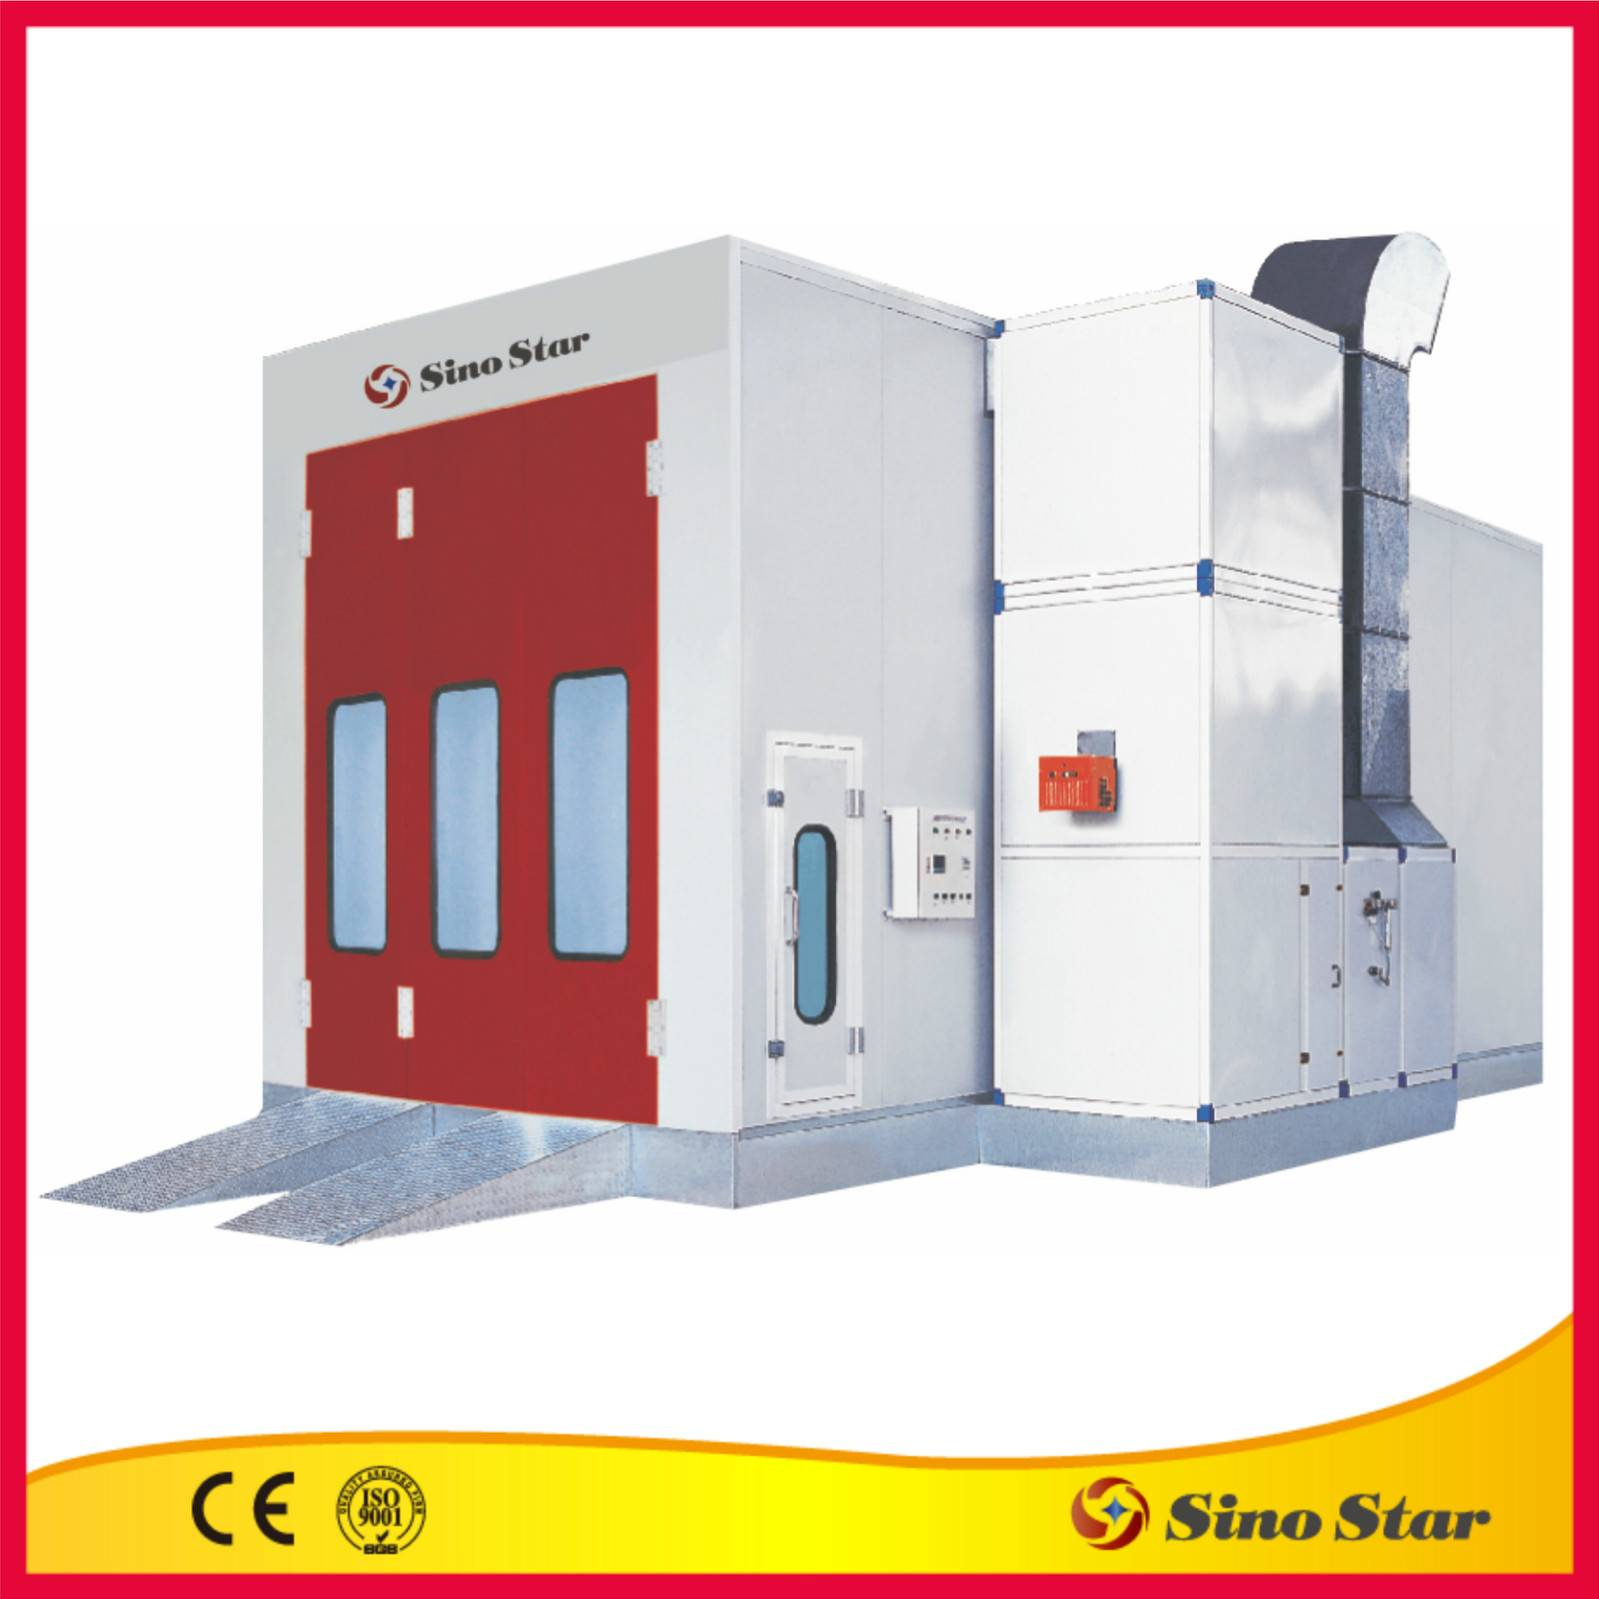 spray booth and baking booth (SS-7203-CE)